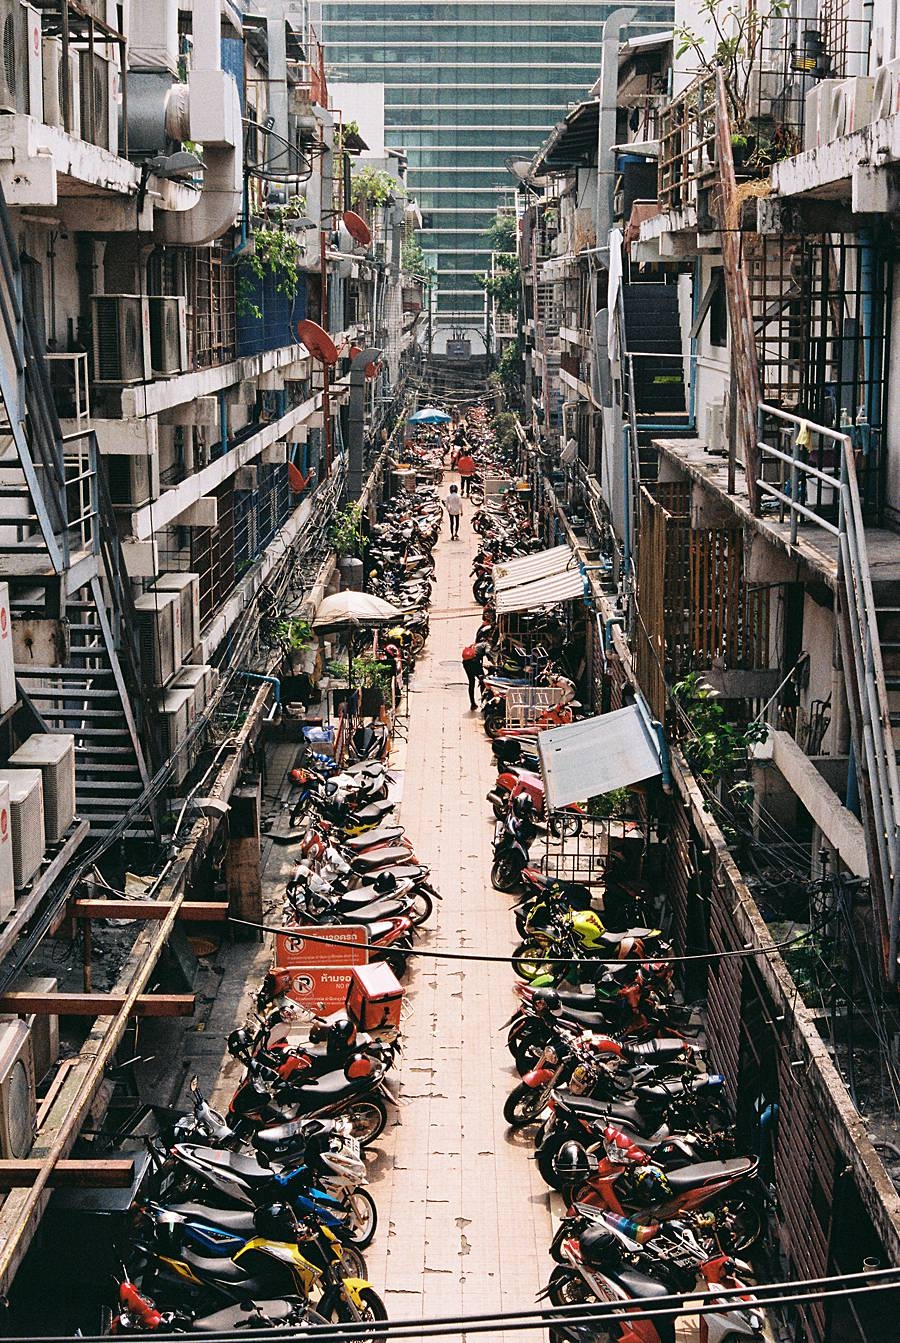 bangkok film kodak gold 200 contax g2 city asia travel backpacking